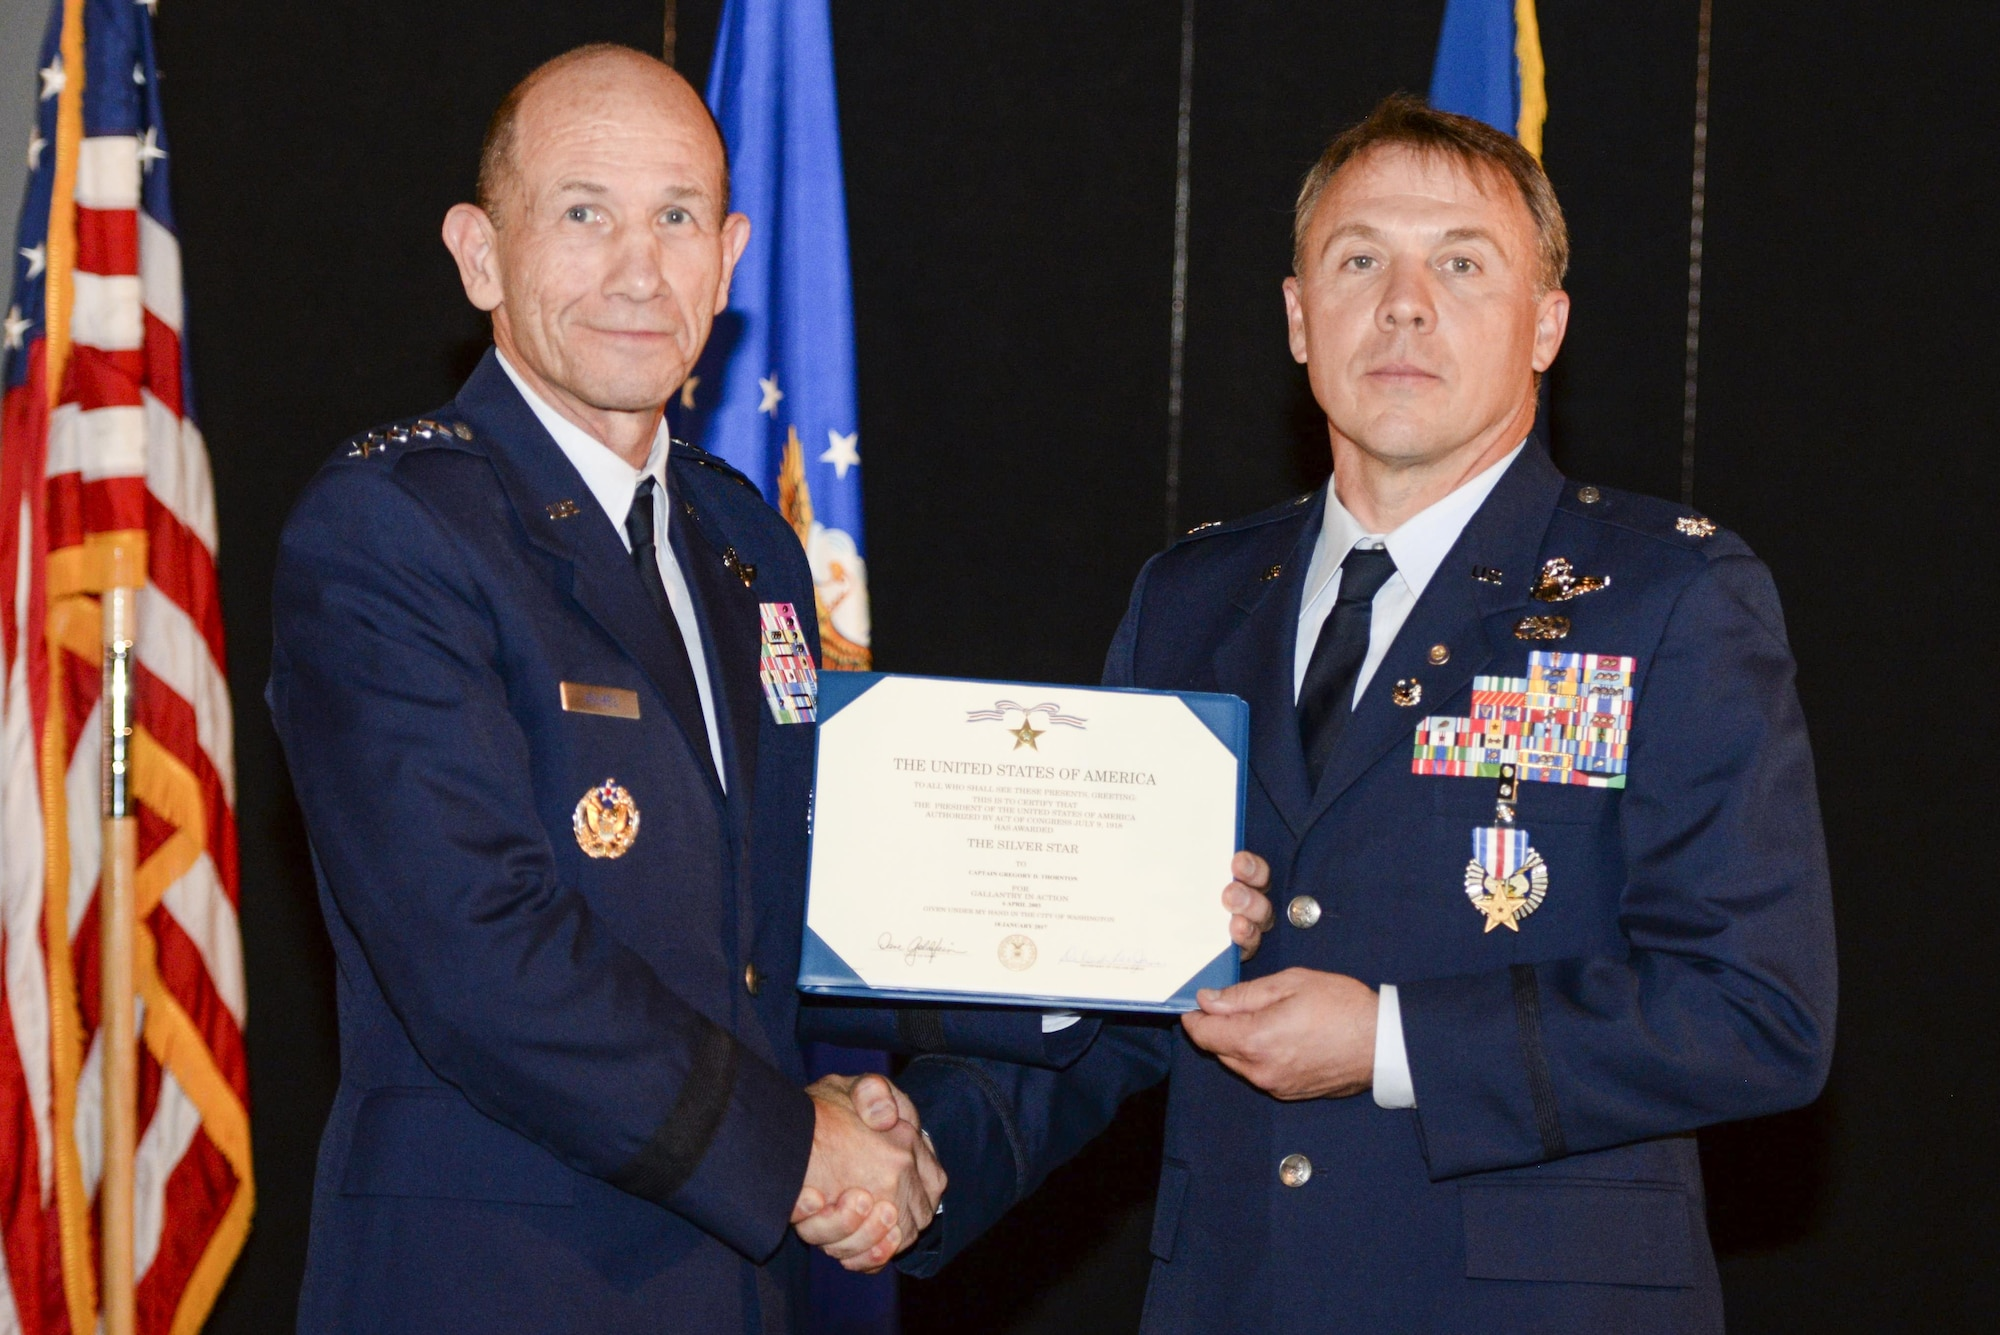 U.S. Air Force Gen. Mike Holmes, commander, Air Combat Command, presents retired Air Force Lt. Col. Gregory Thornton with the Silver Star medal certificate during a ceremony at the National Museum of the United States Air Force in Dayton, Ohio, June 30, 2017. Thornton received the Silver Star for his actions on April 6, 2003 while supporting 'Advance 33,' the call sign for a ground forward air controller attached to Task Force 2nd Battalion, 69th Armor, during combat operations in Iraq. The Silver Star is the third-highest combat decoration for gallantry in action that can be awarded to a member of the United States Armed Forces. (U.S. Air Force photo by Wesley Farnsworth)